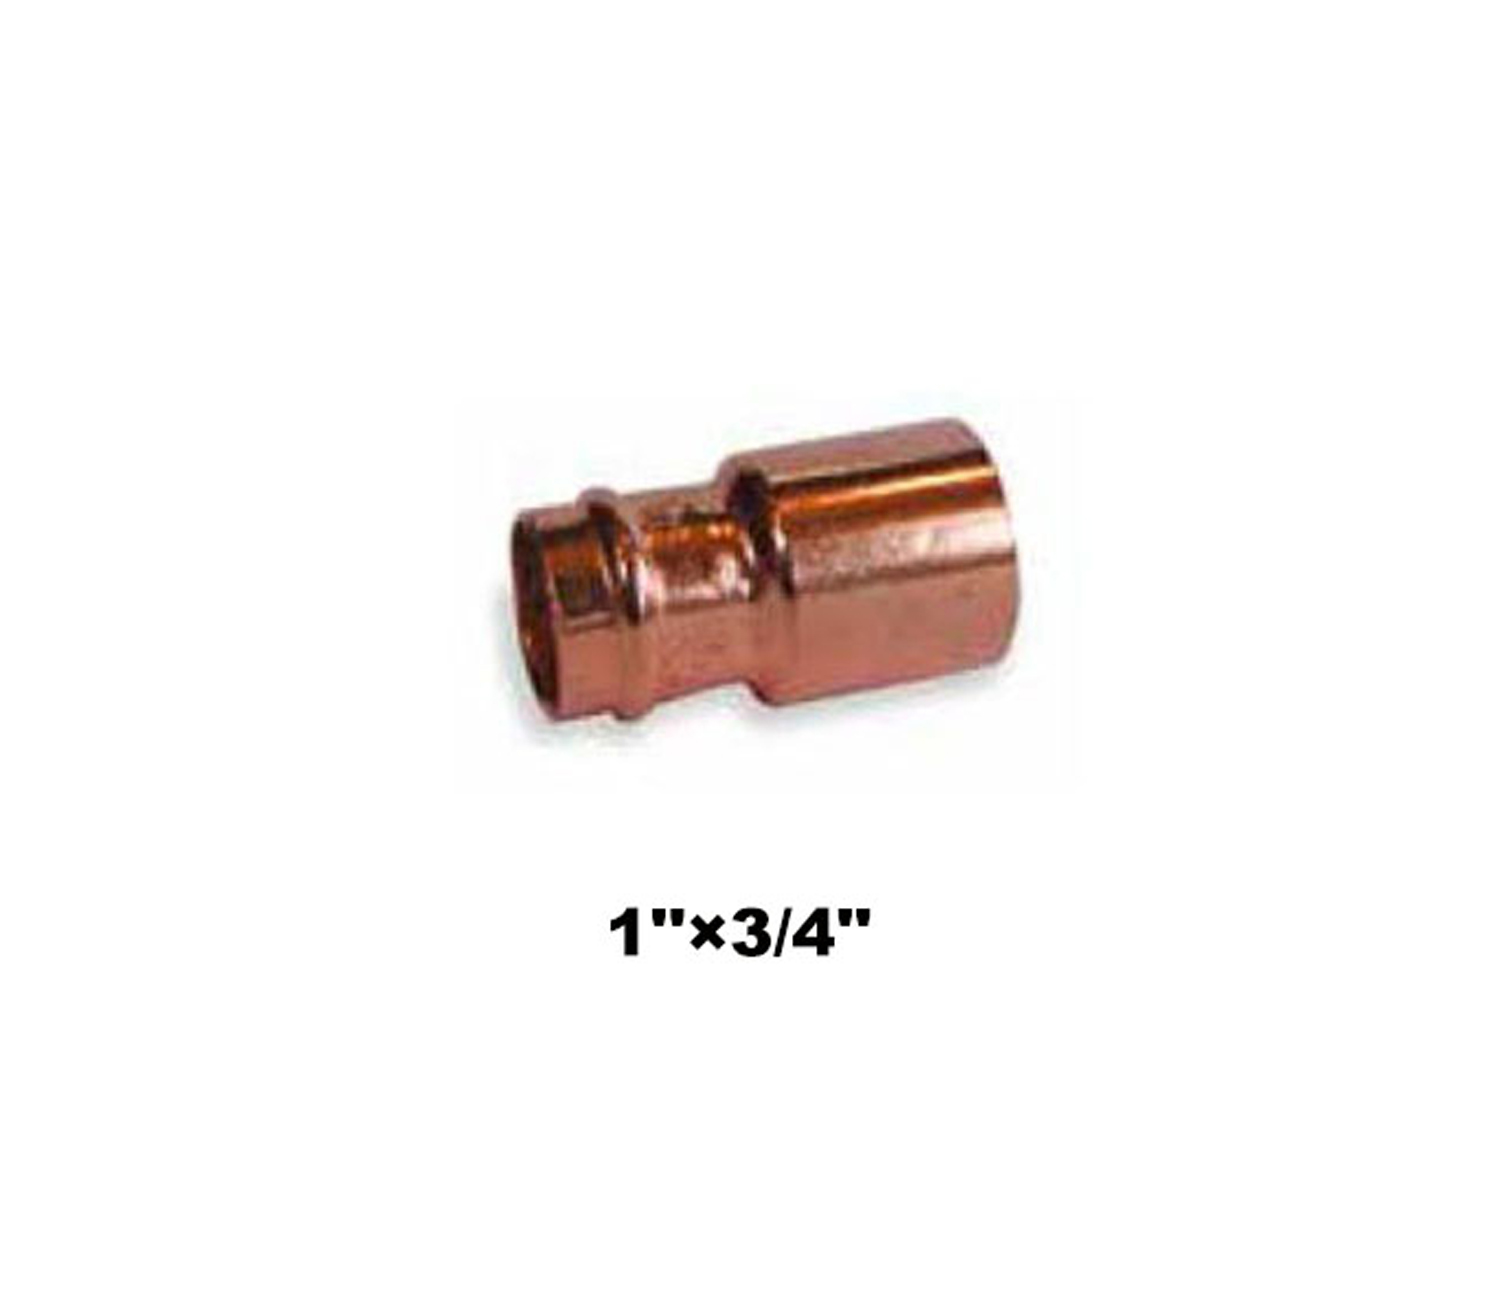 "Compression Fitting Reducer 1""×3/4"" (19032)"